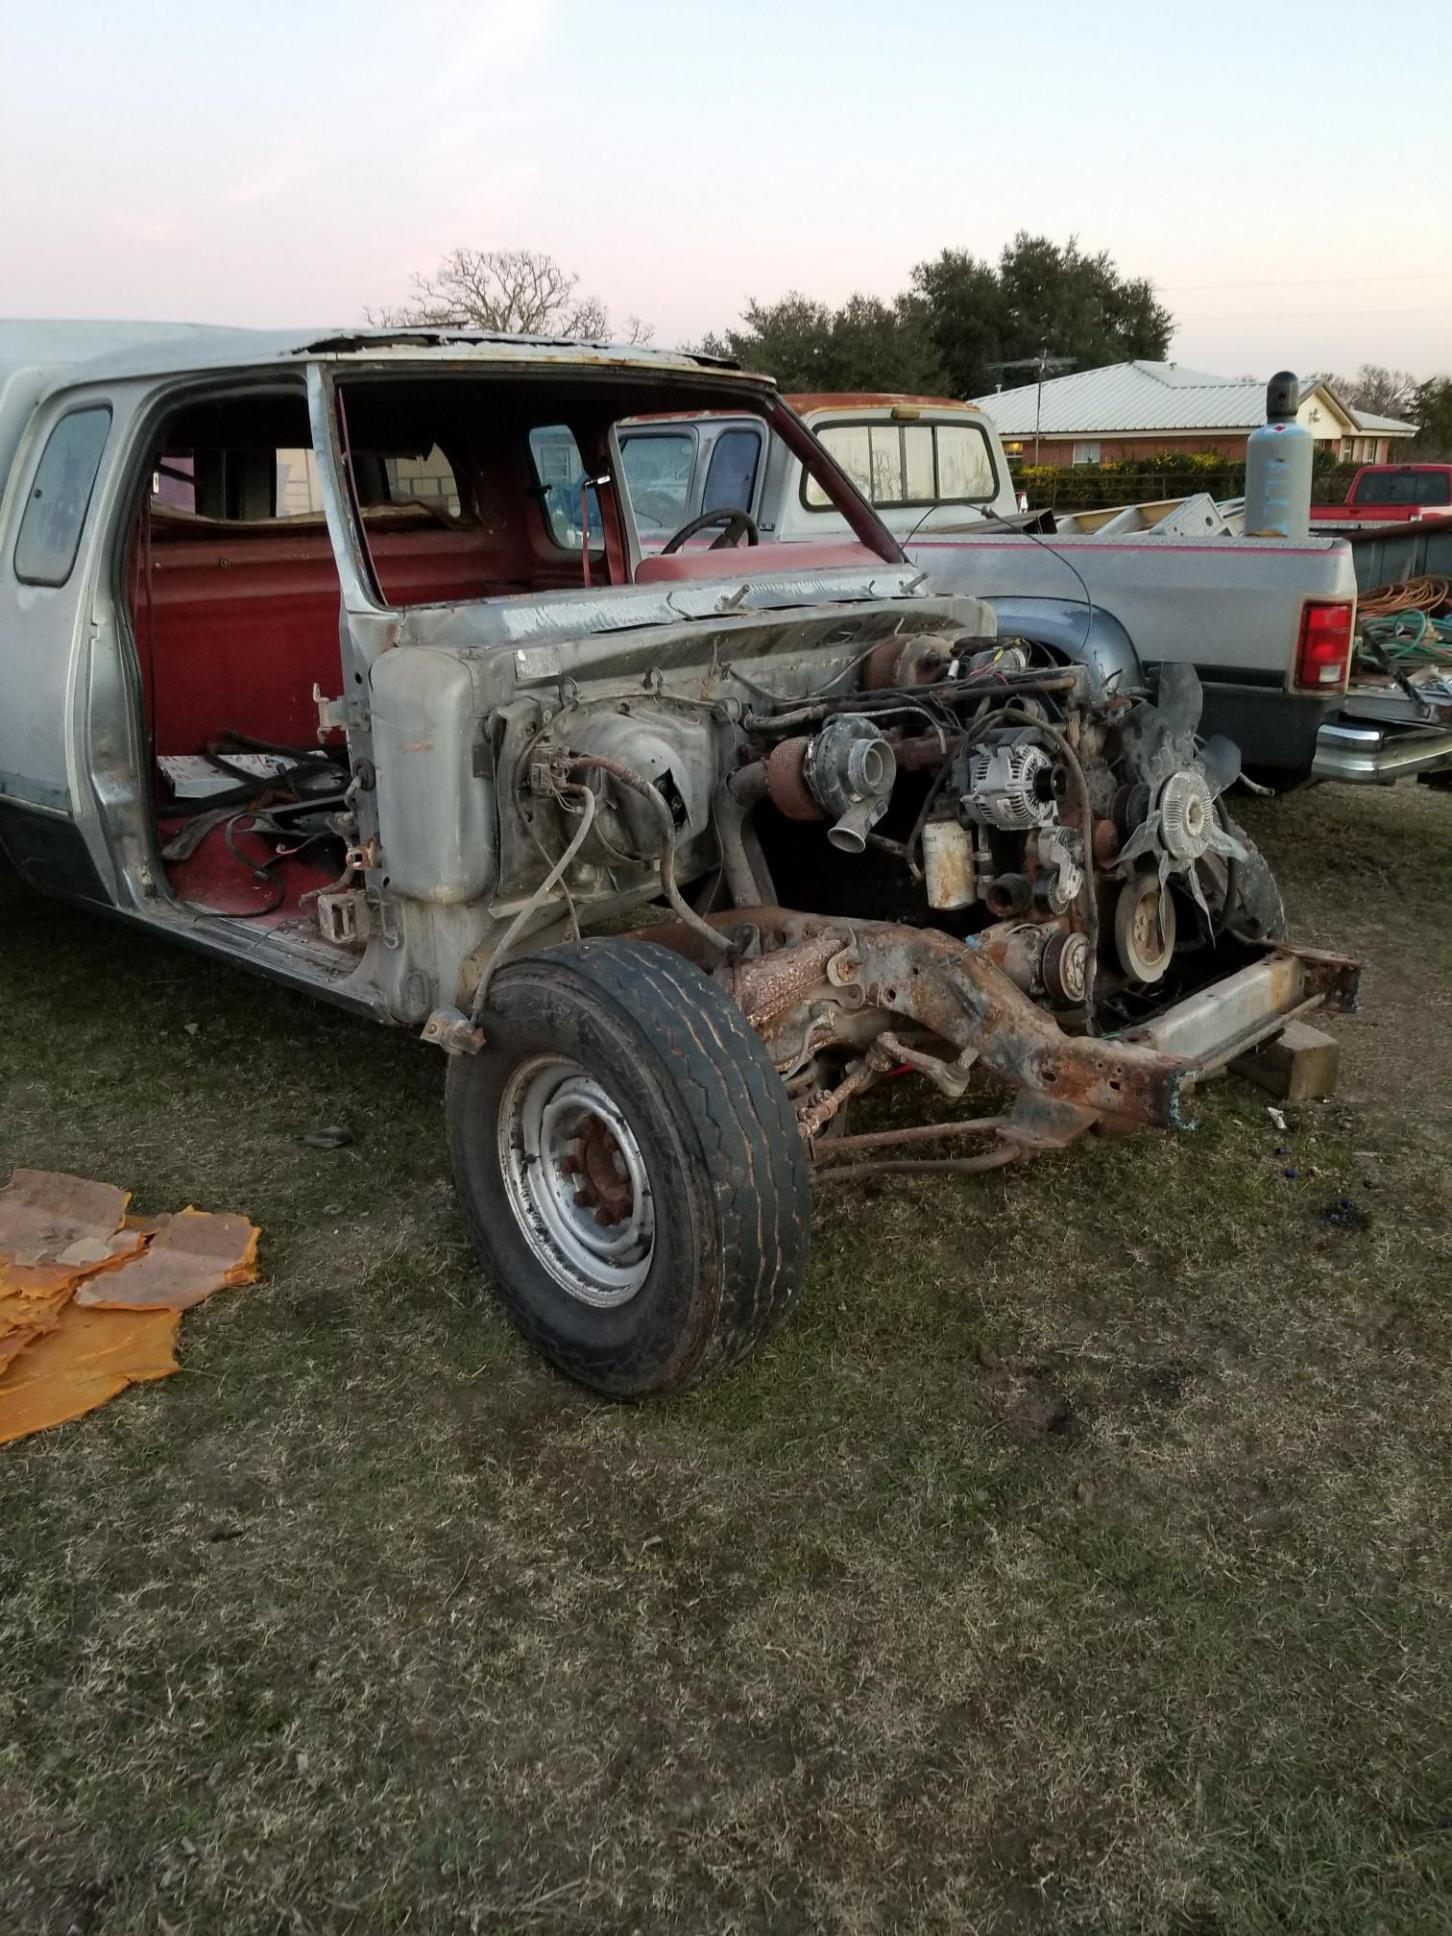 1983 D350 Crew Ctd 5speed Dodge Diesel Truck Resource Forums Chrysler Wiring Harness Pulled All The Fenders Hood Front Clip About Time To Pull Motor